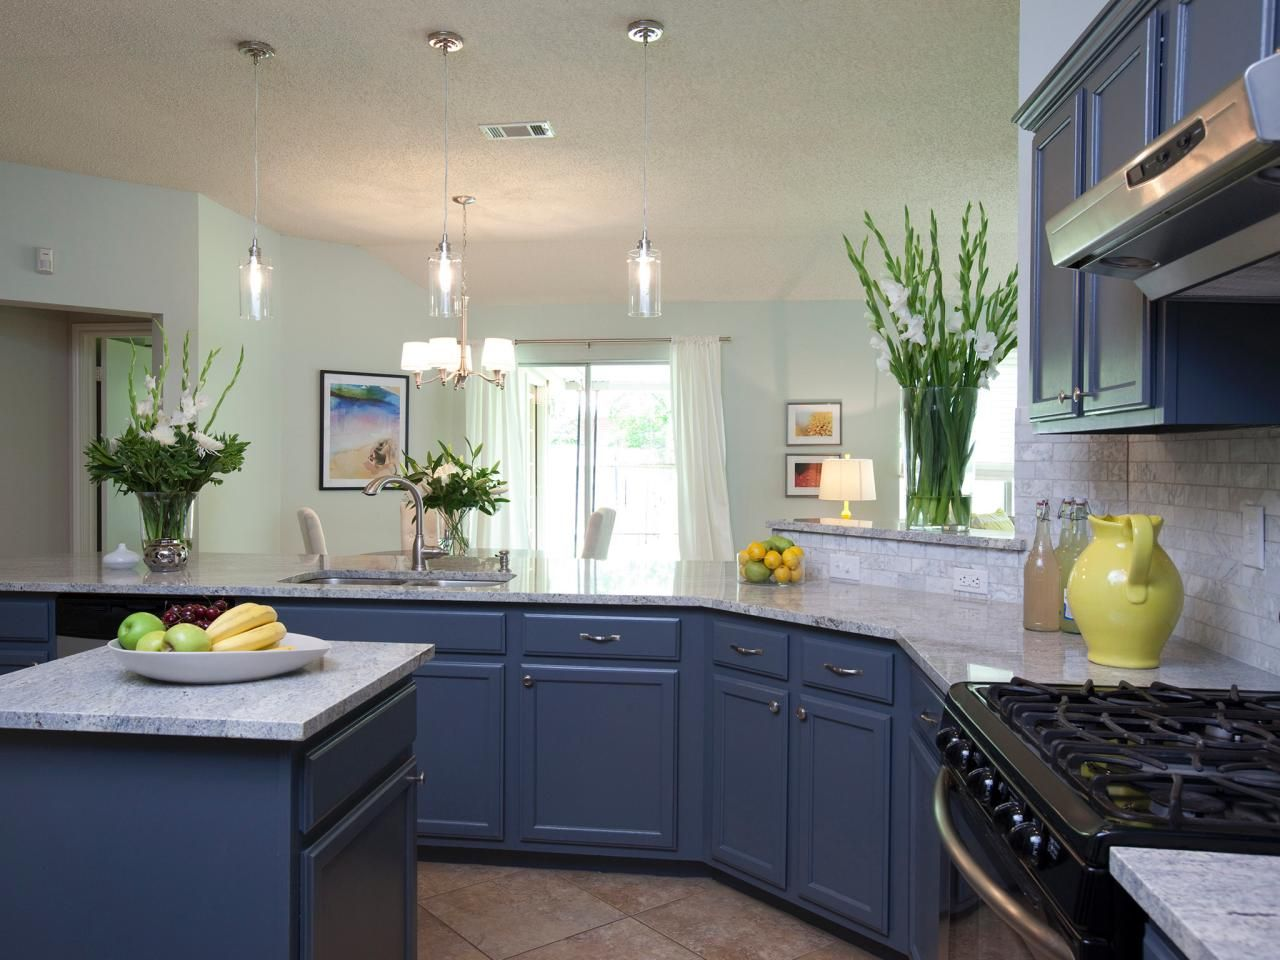 This open floor plan kitchen and living room carry a cool